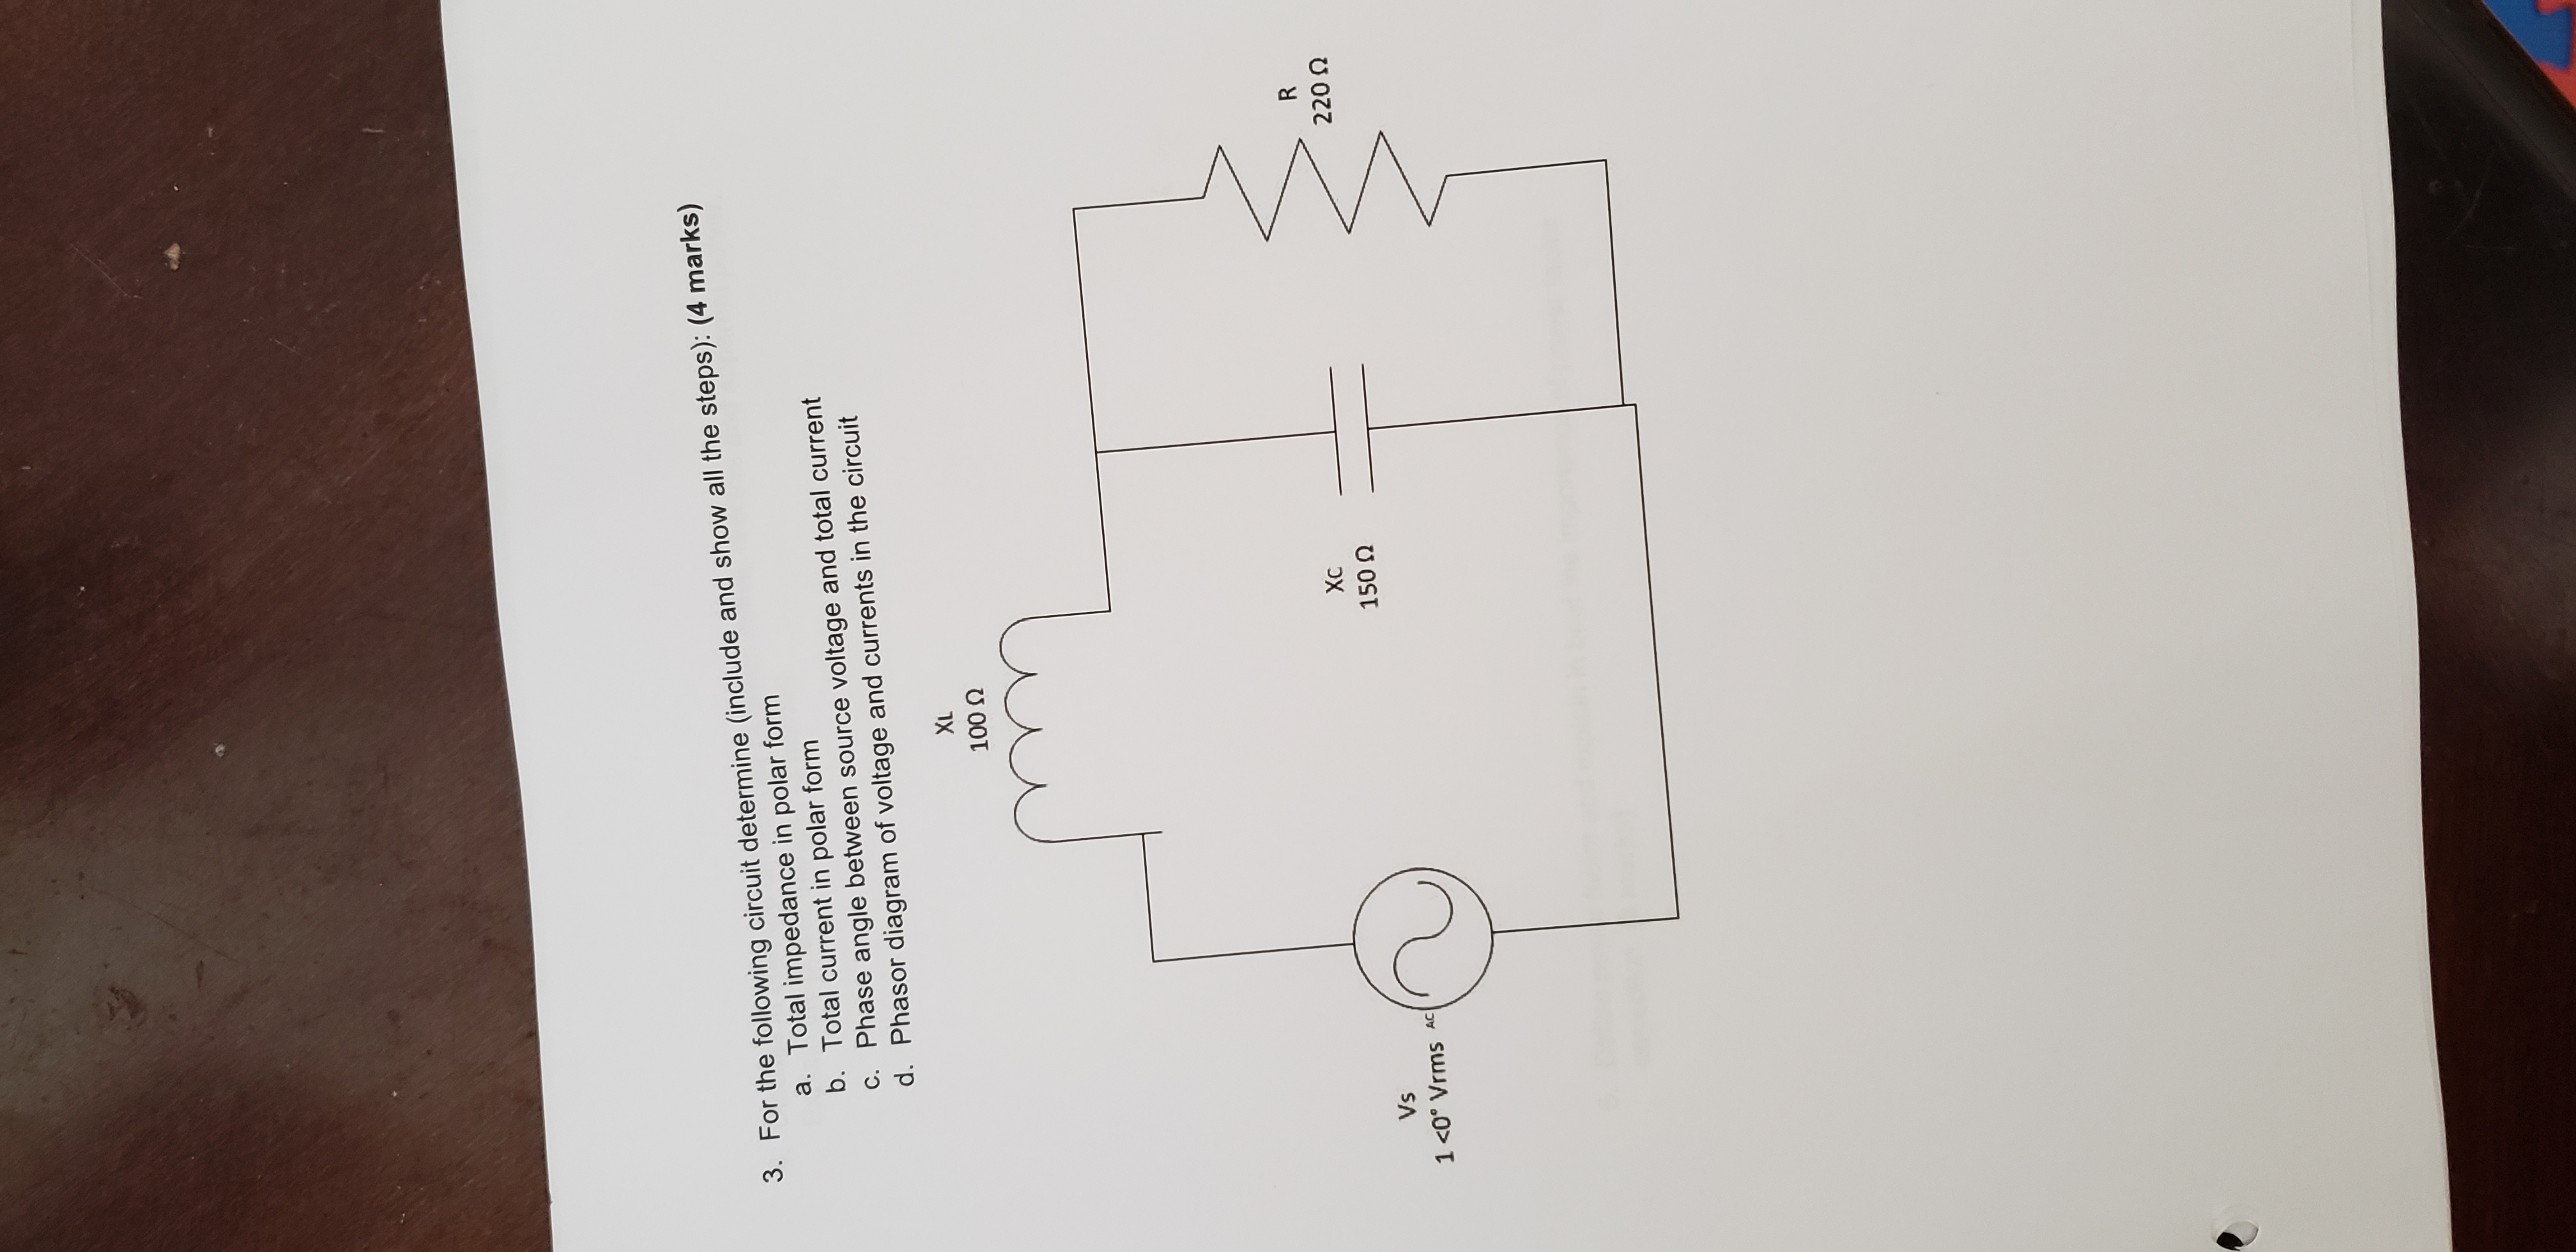 3. For the following circuit determine (include and show all the steps): (4 marks) a. Total impedance in polar form b. Total current in polar form C. Phase angle between source voltage and total current d. Phasor diagram of voltage and currents in the circuit XL 100 R Хс 220 150 Q Vs 1 <0° Vrms AC